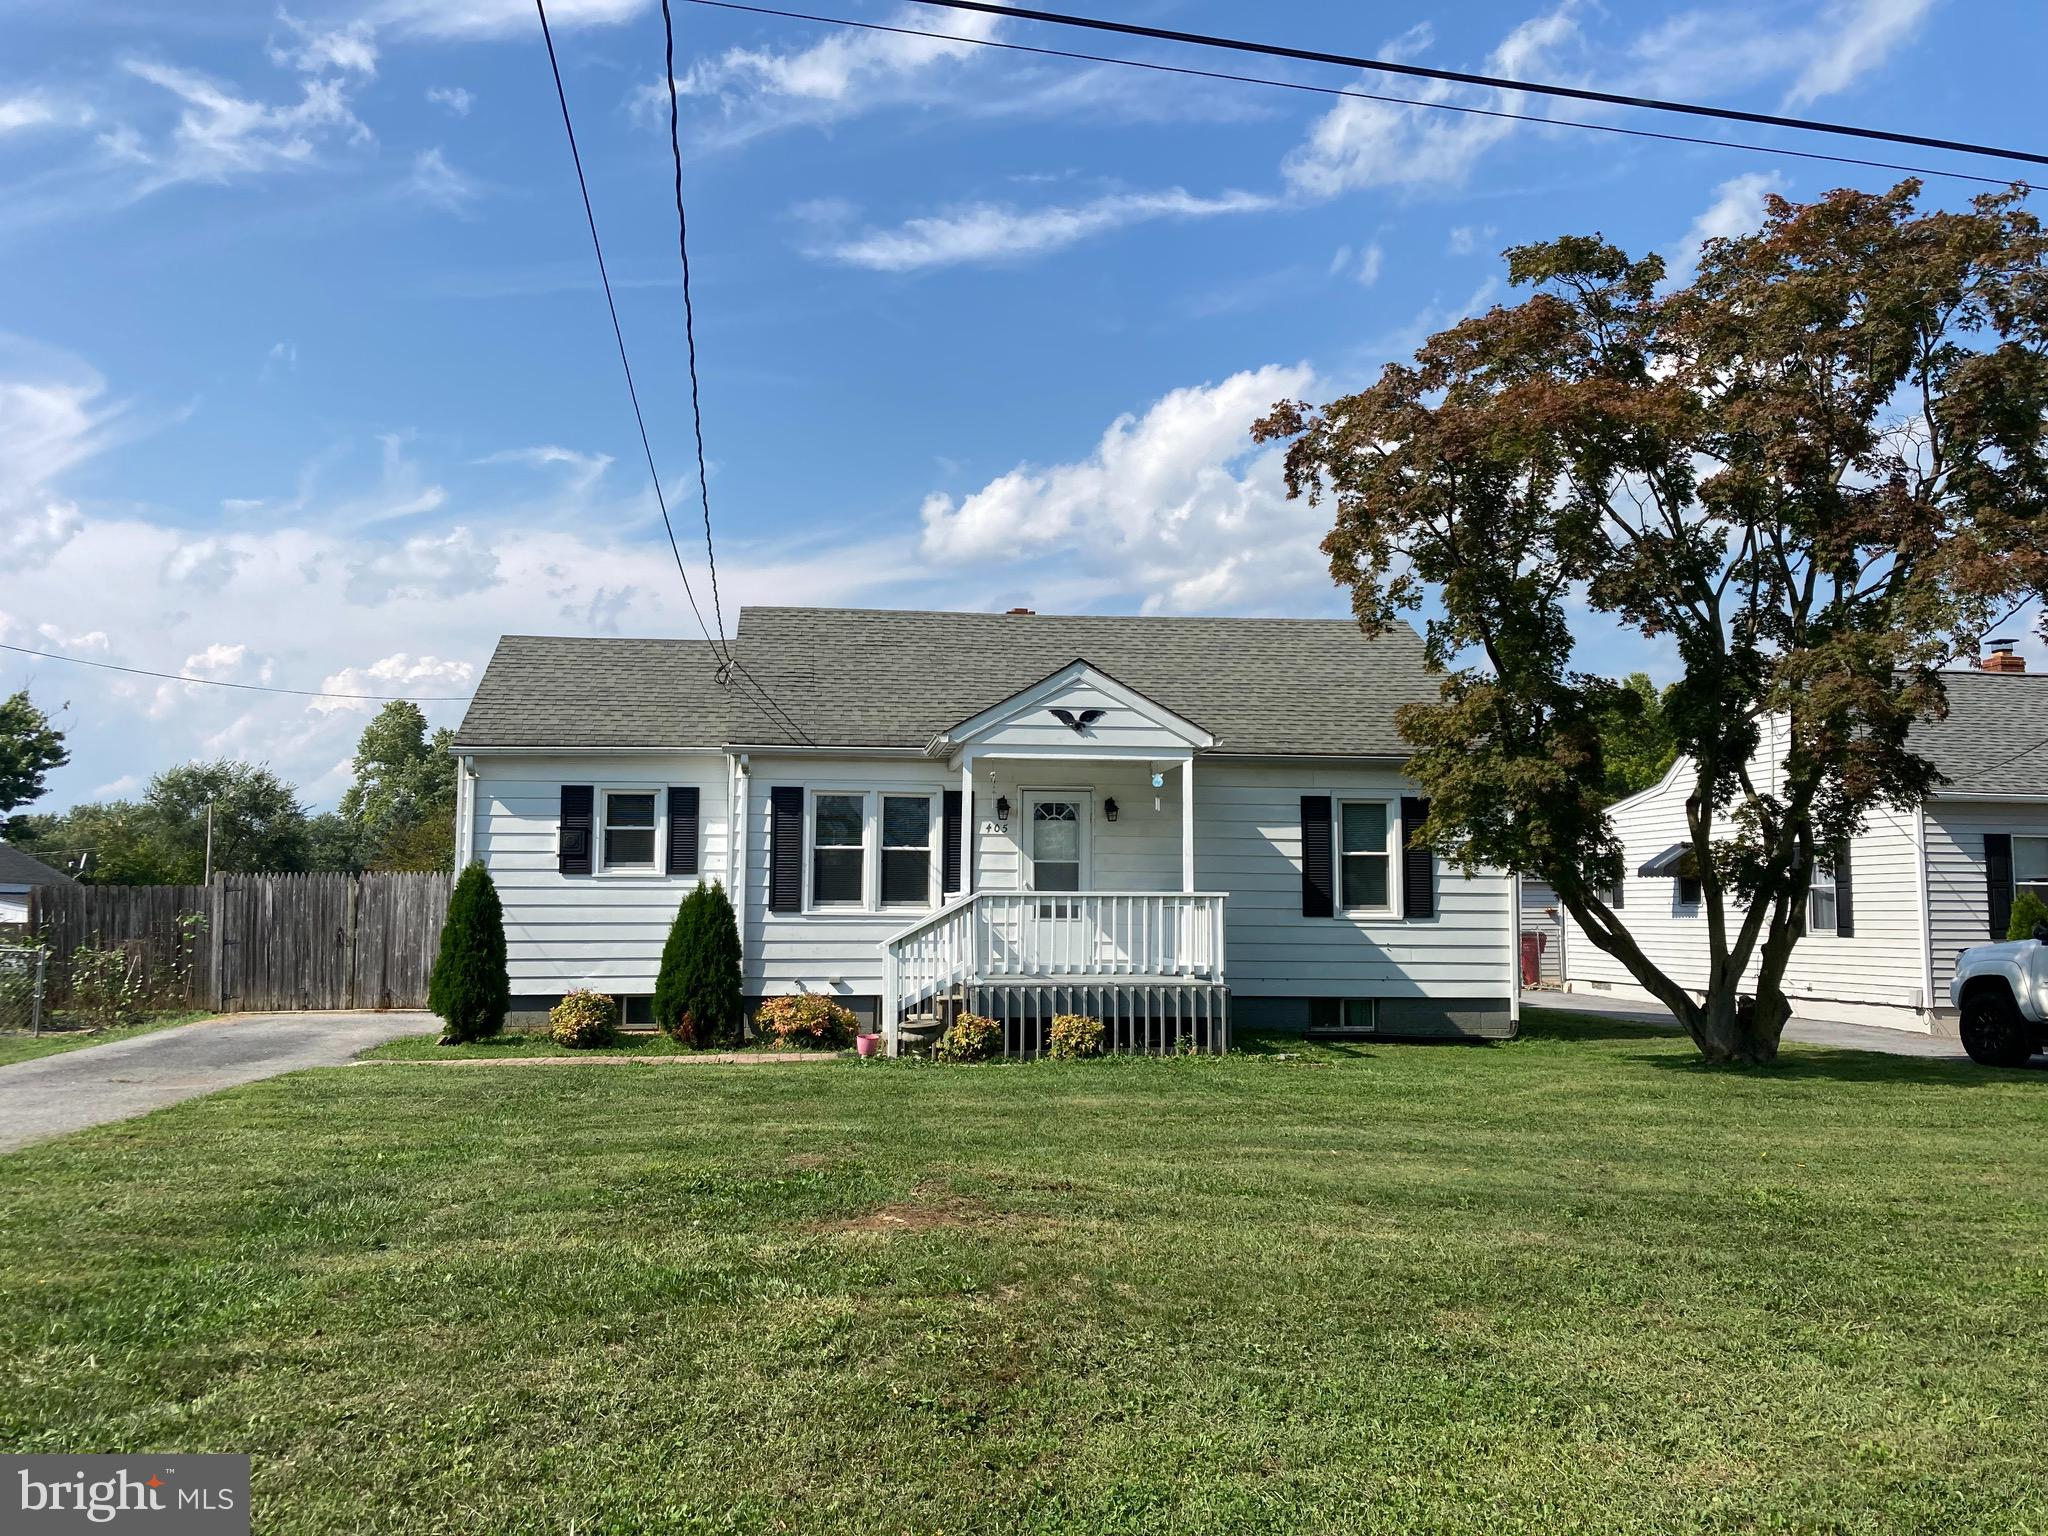 Jefferson County, WV 3 bedroom, 2 bath rancher with a full basement. Move in ready and should go all